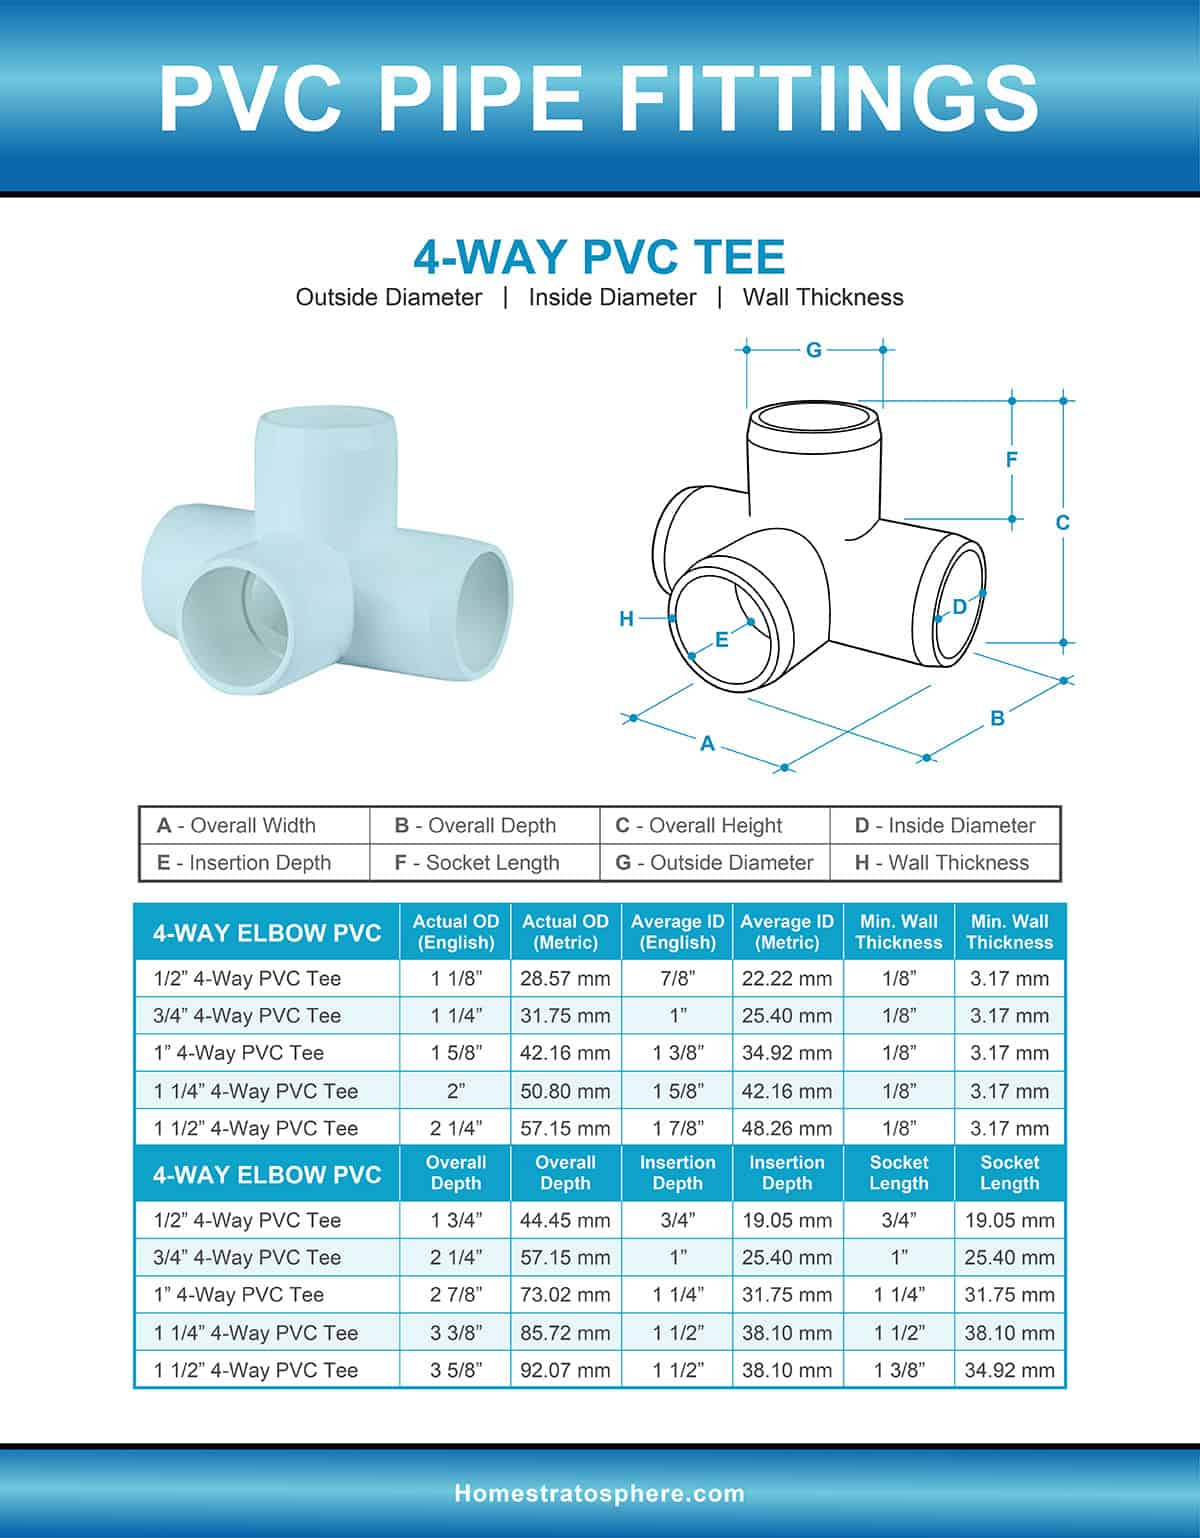 4-Way PVC Tee illustration and Sizes Chart